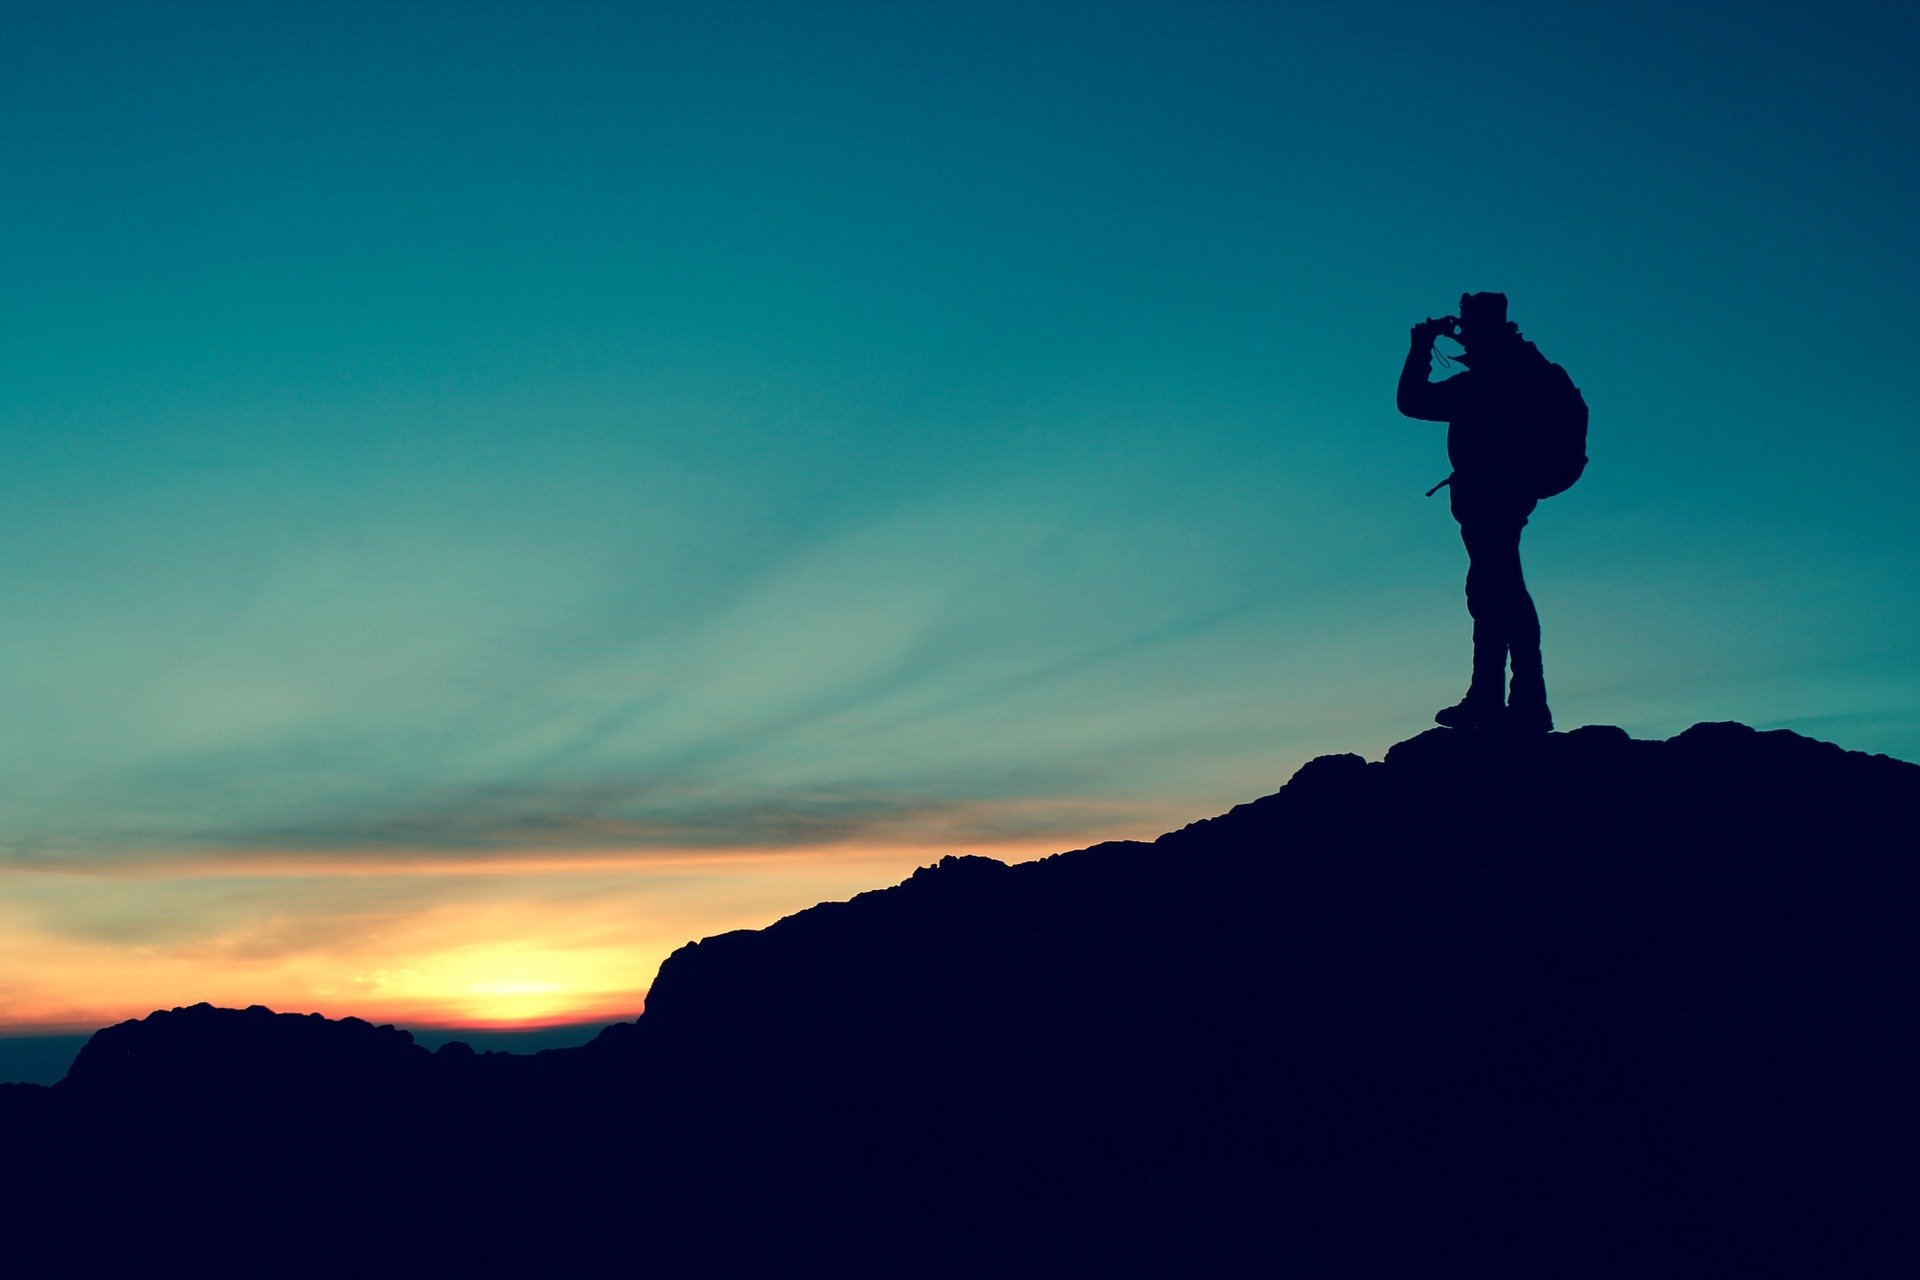 A silhouette of a hiker taking in the views atop a mountain | Photo: Pixabay